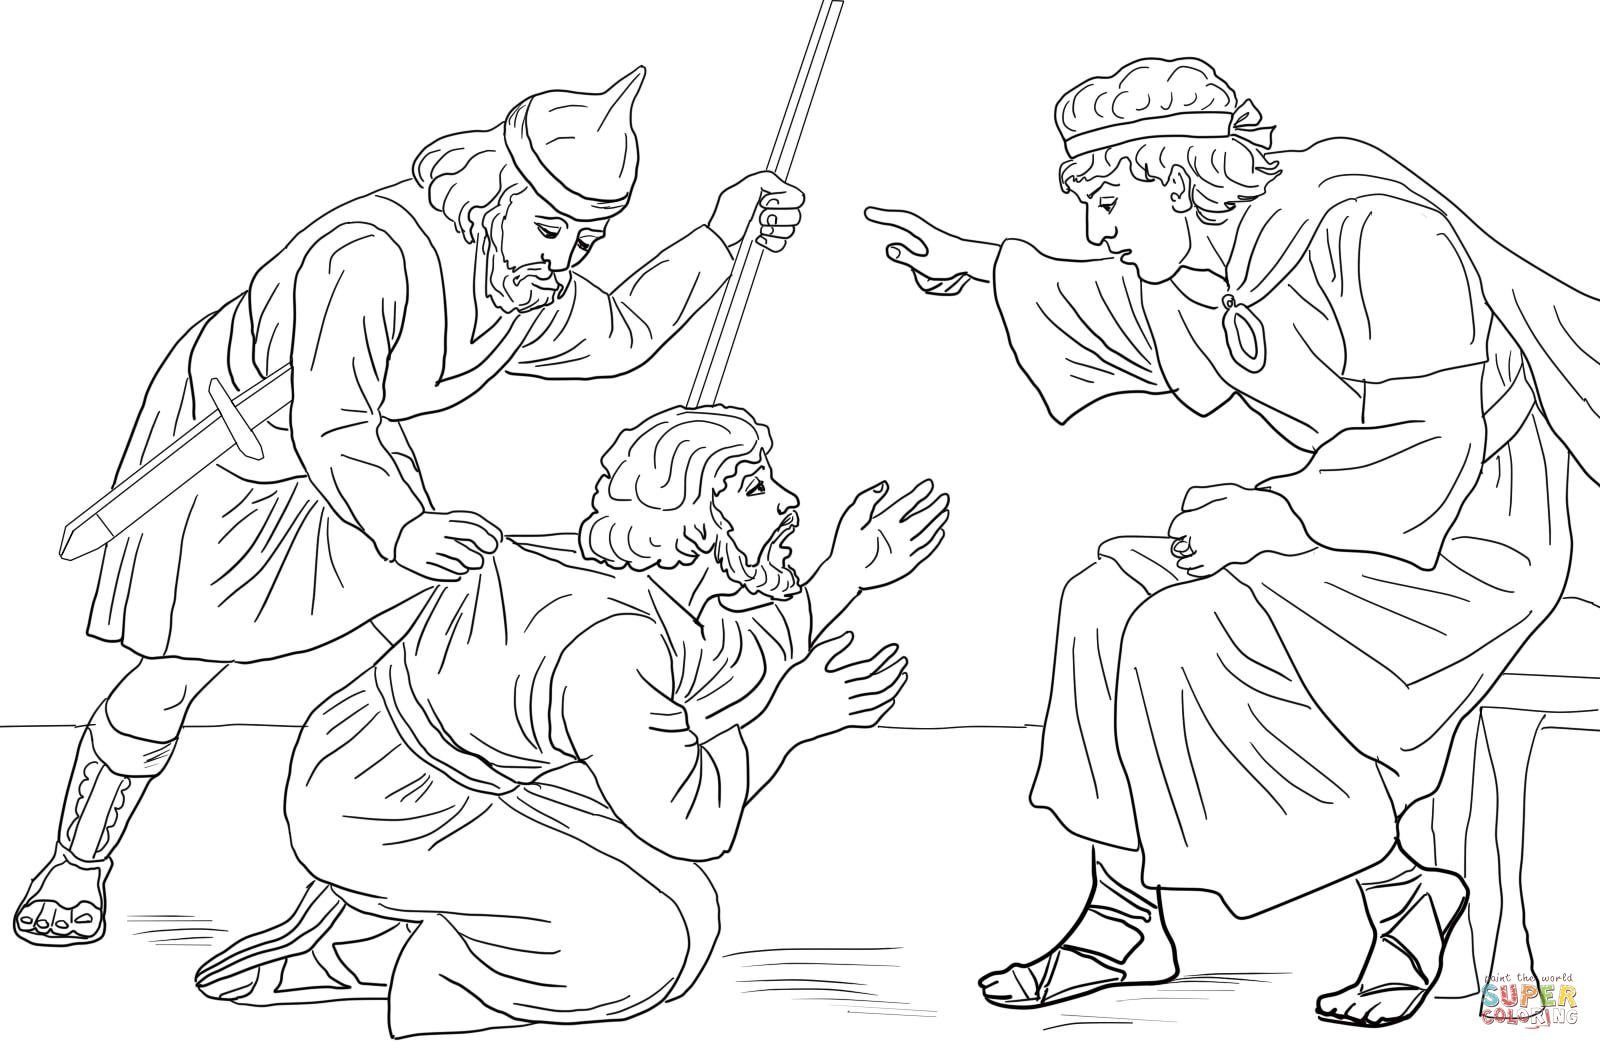 Parable Of Unmerciful Servant Coloring Page Bible Coloring Pages